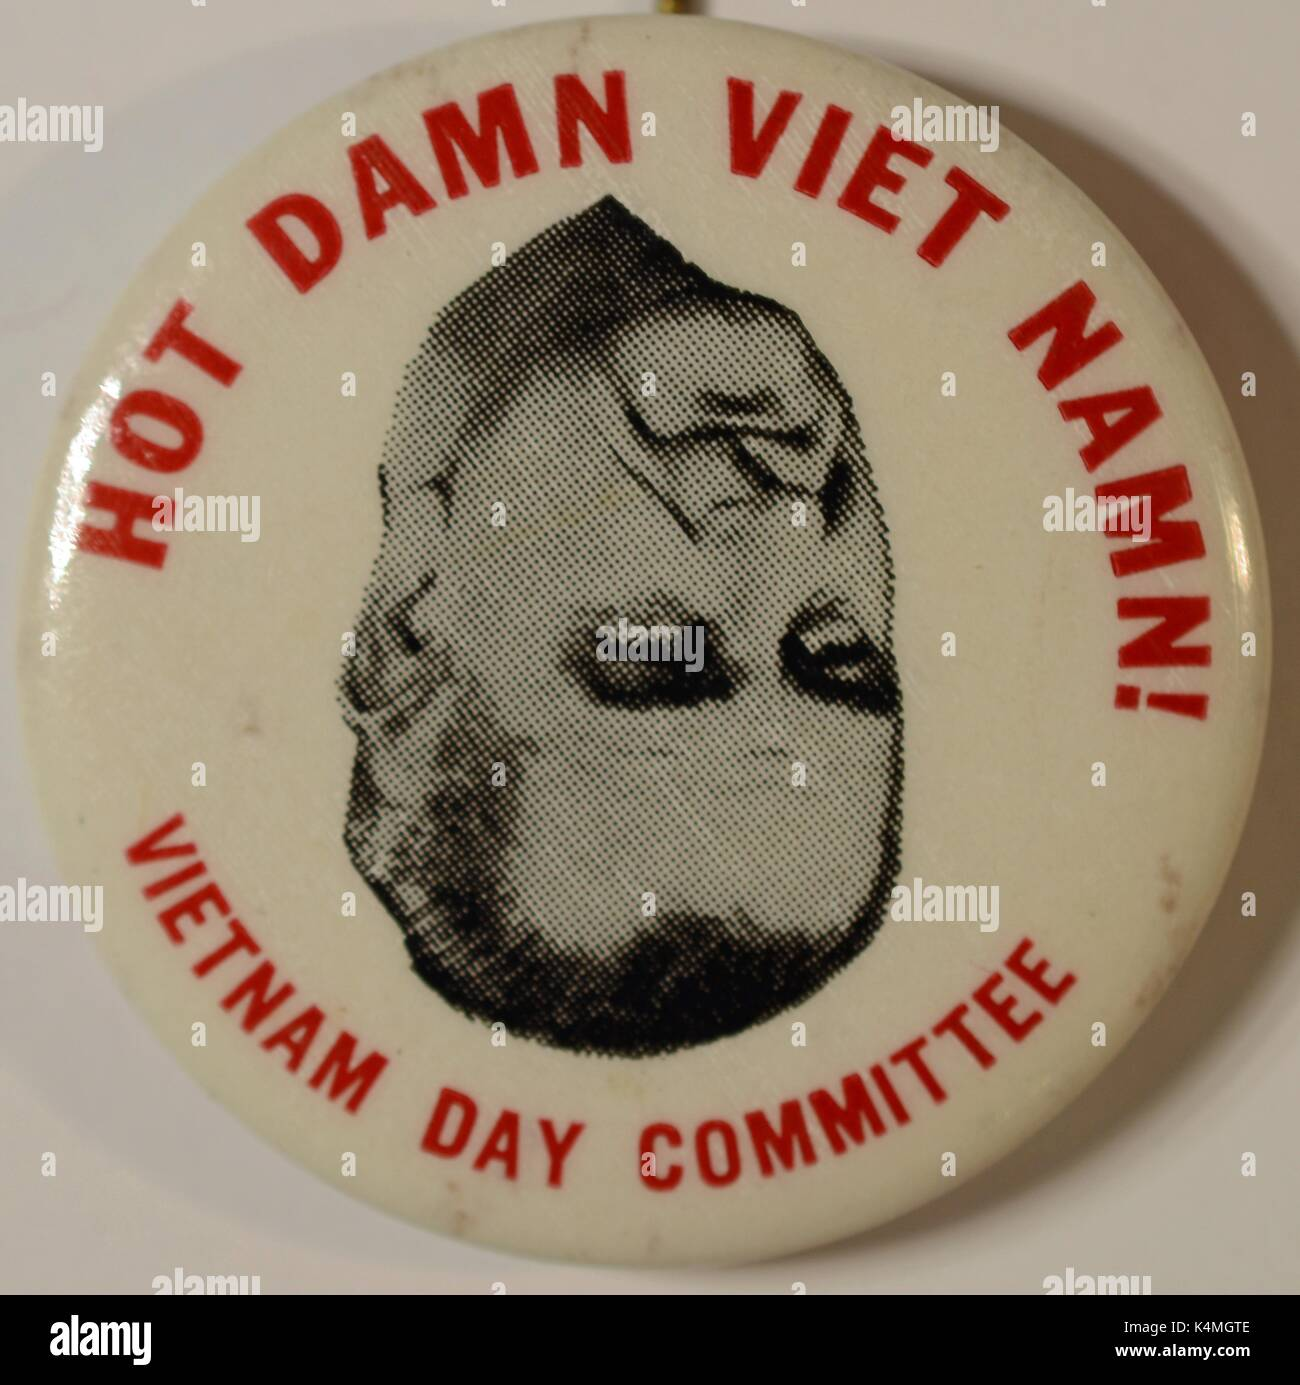 Pinback button from the Vietnam Day Committee with image of United States President Lyndon Johnson, with text reading 'Hot Damn Viet Namn', criticizing the President's handling of the Vietnam War, 1965. - Stock Image